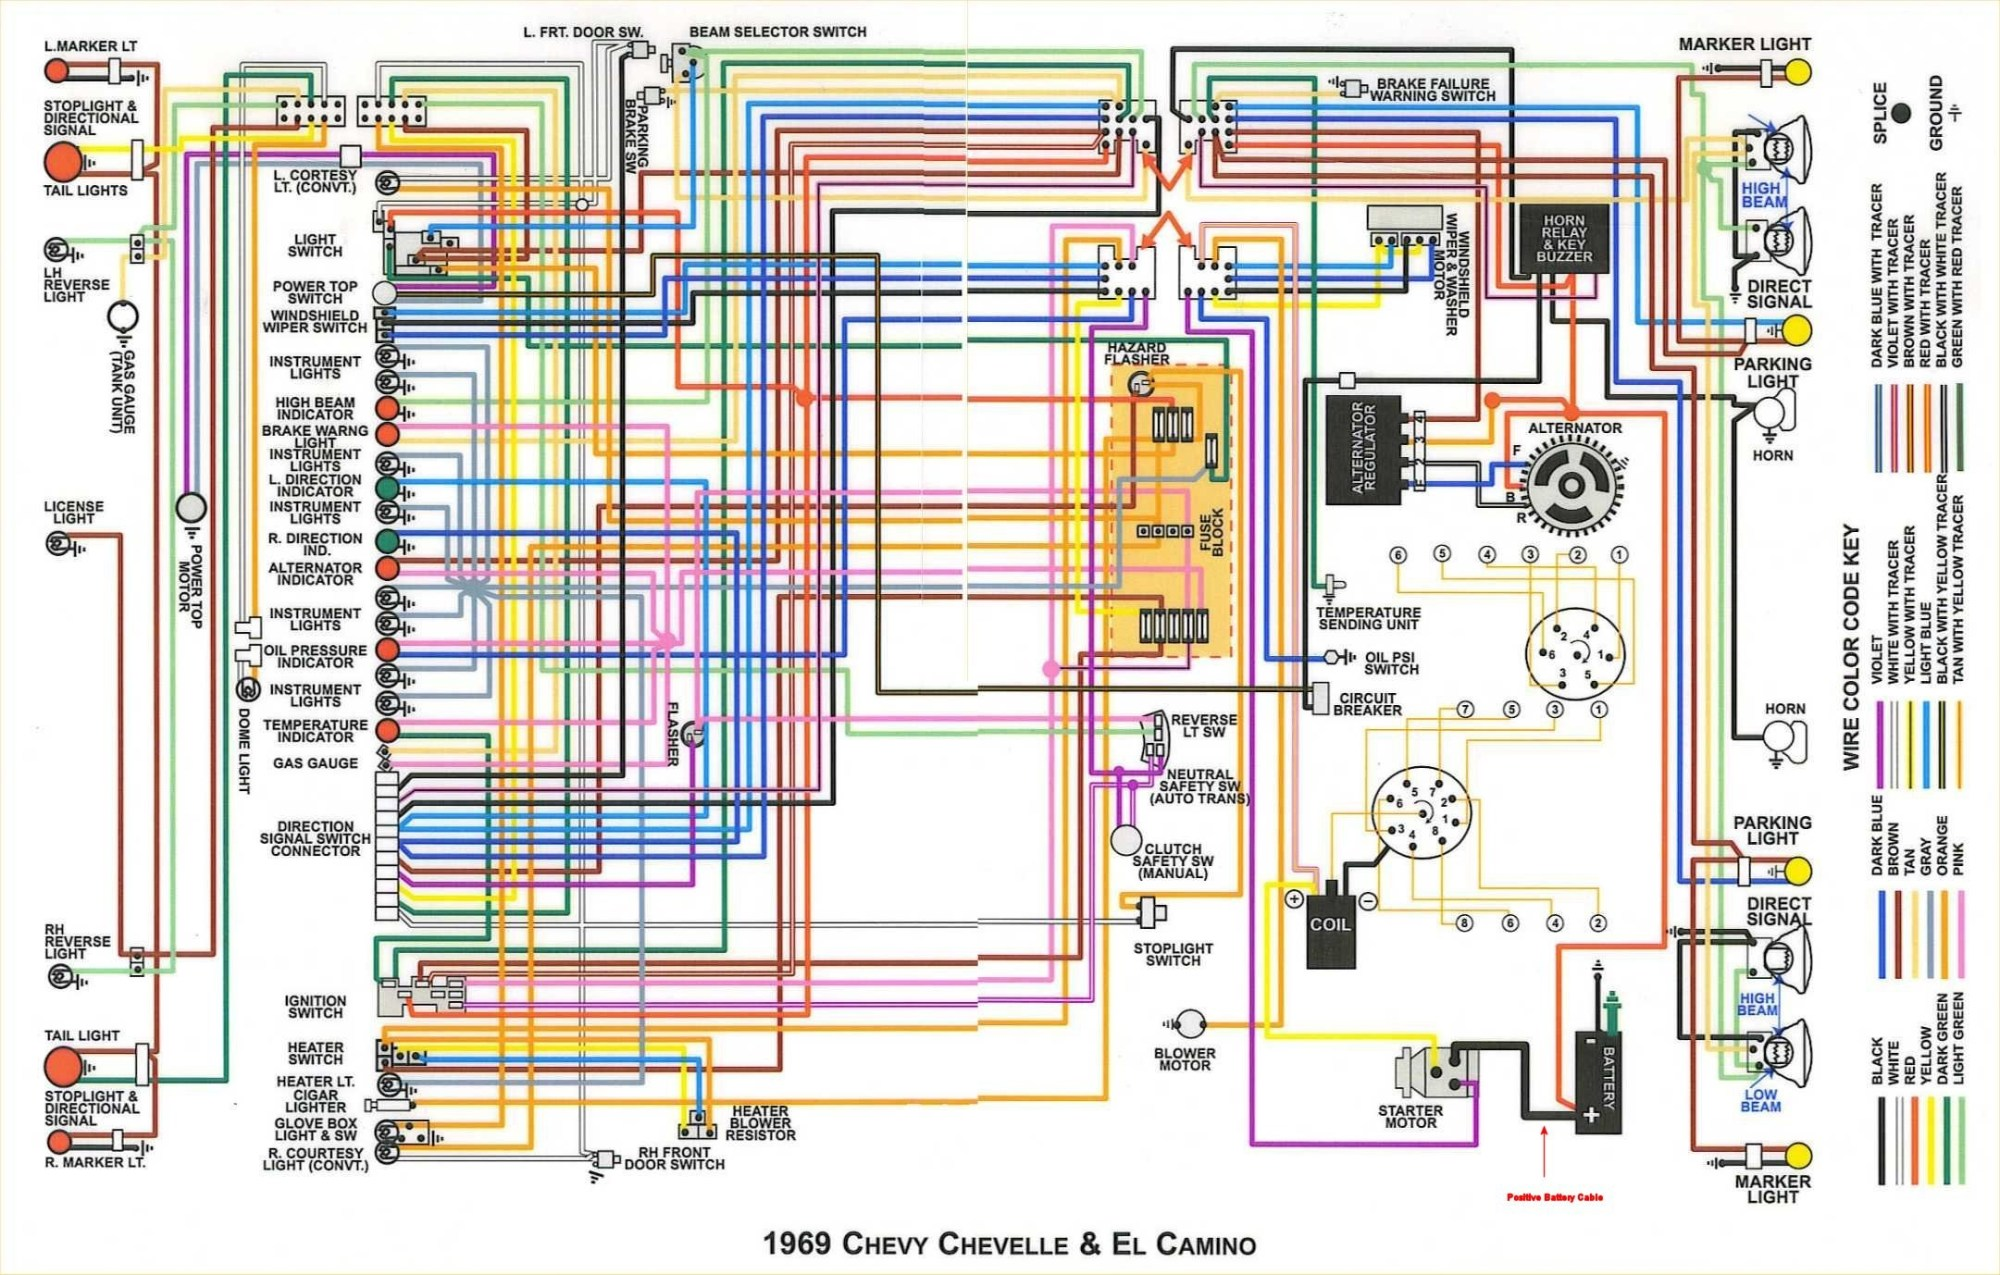 hight resolution of 1968 camaro dash wiring diagram wiring library rh 76 bloxhuette de 1967 chevelle wiring diagrams online 1966 chevelle wiring diagram online